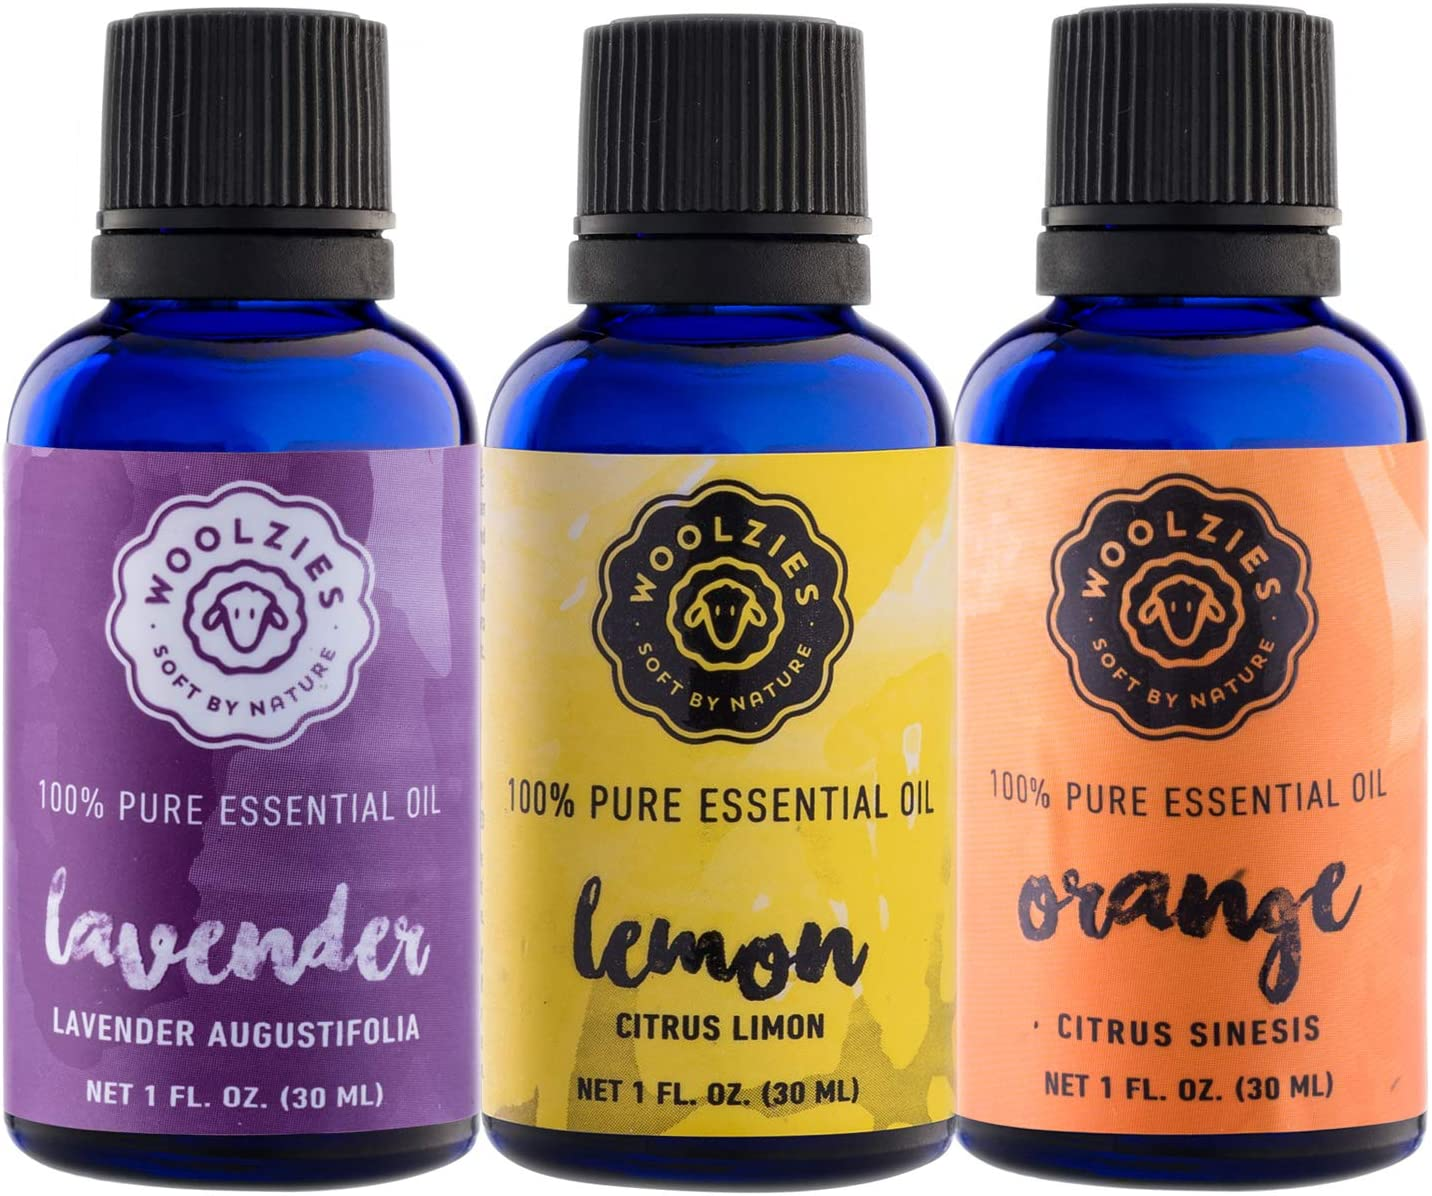 Woolzies Essential Oils Gift Set: Lavender, Lemon and Sweet Orange Kit | 100% Pure, Organic, Therapeutic Grade, Aromatherapy Essential Oils for Diffuser | Set of 3-1 oz Oils